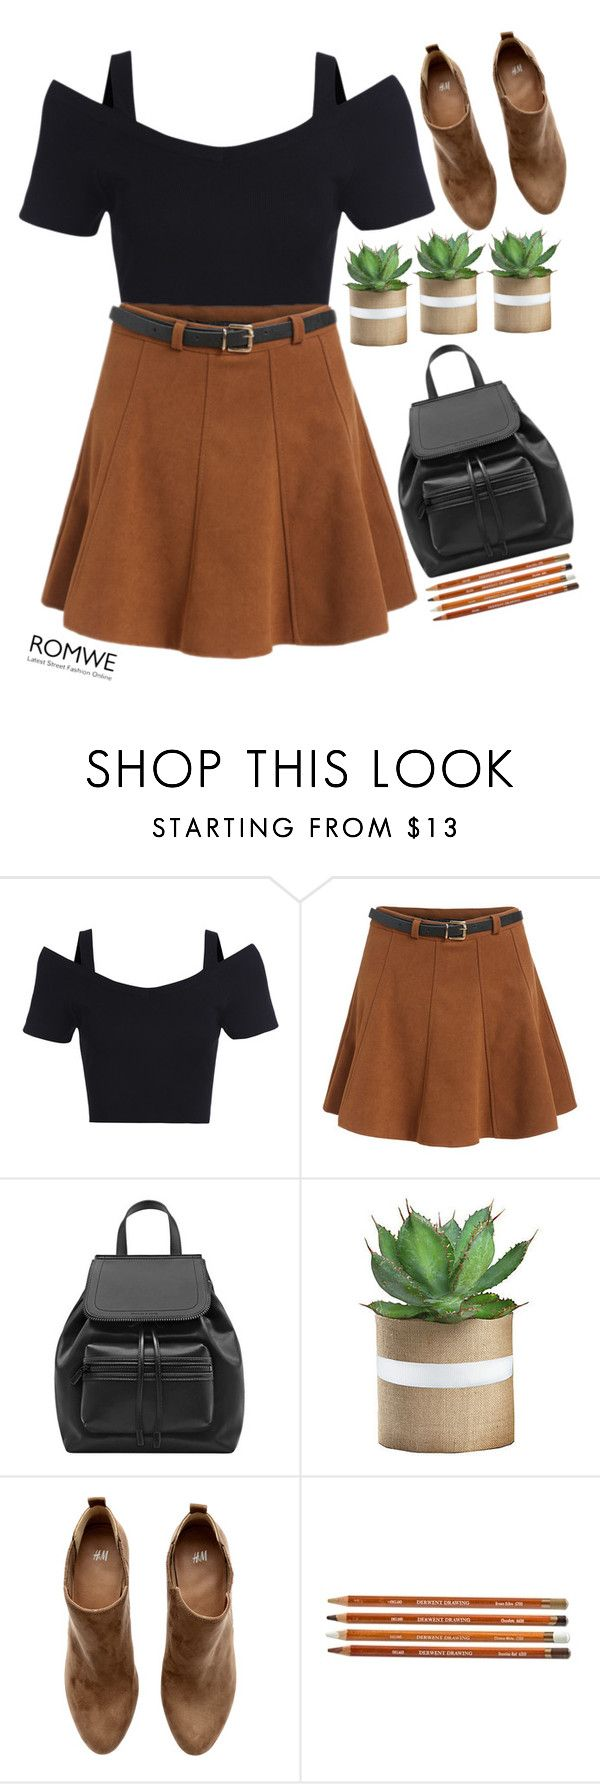 """#Romwe"" by credentovideos ❤ liked on Polyvore featuring H&M"